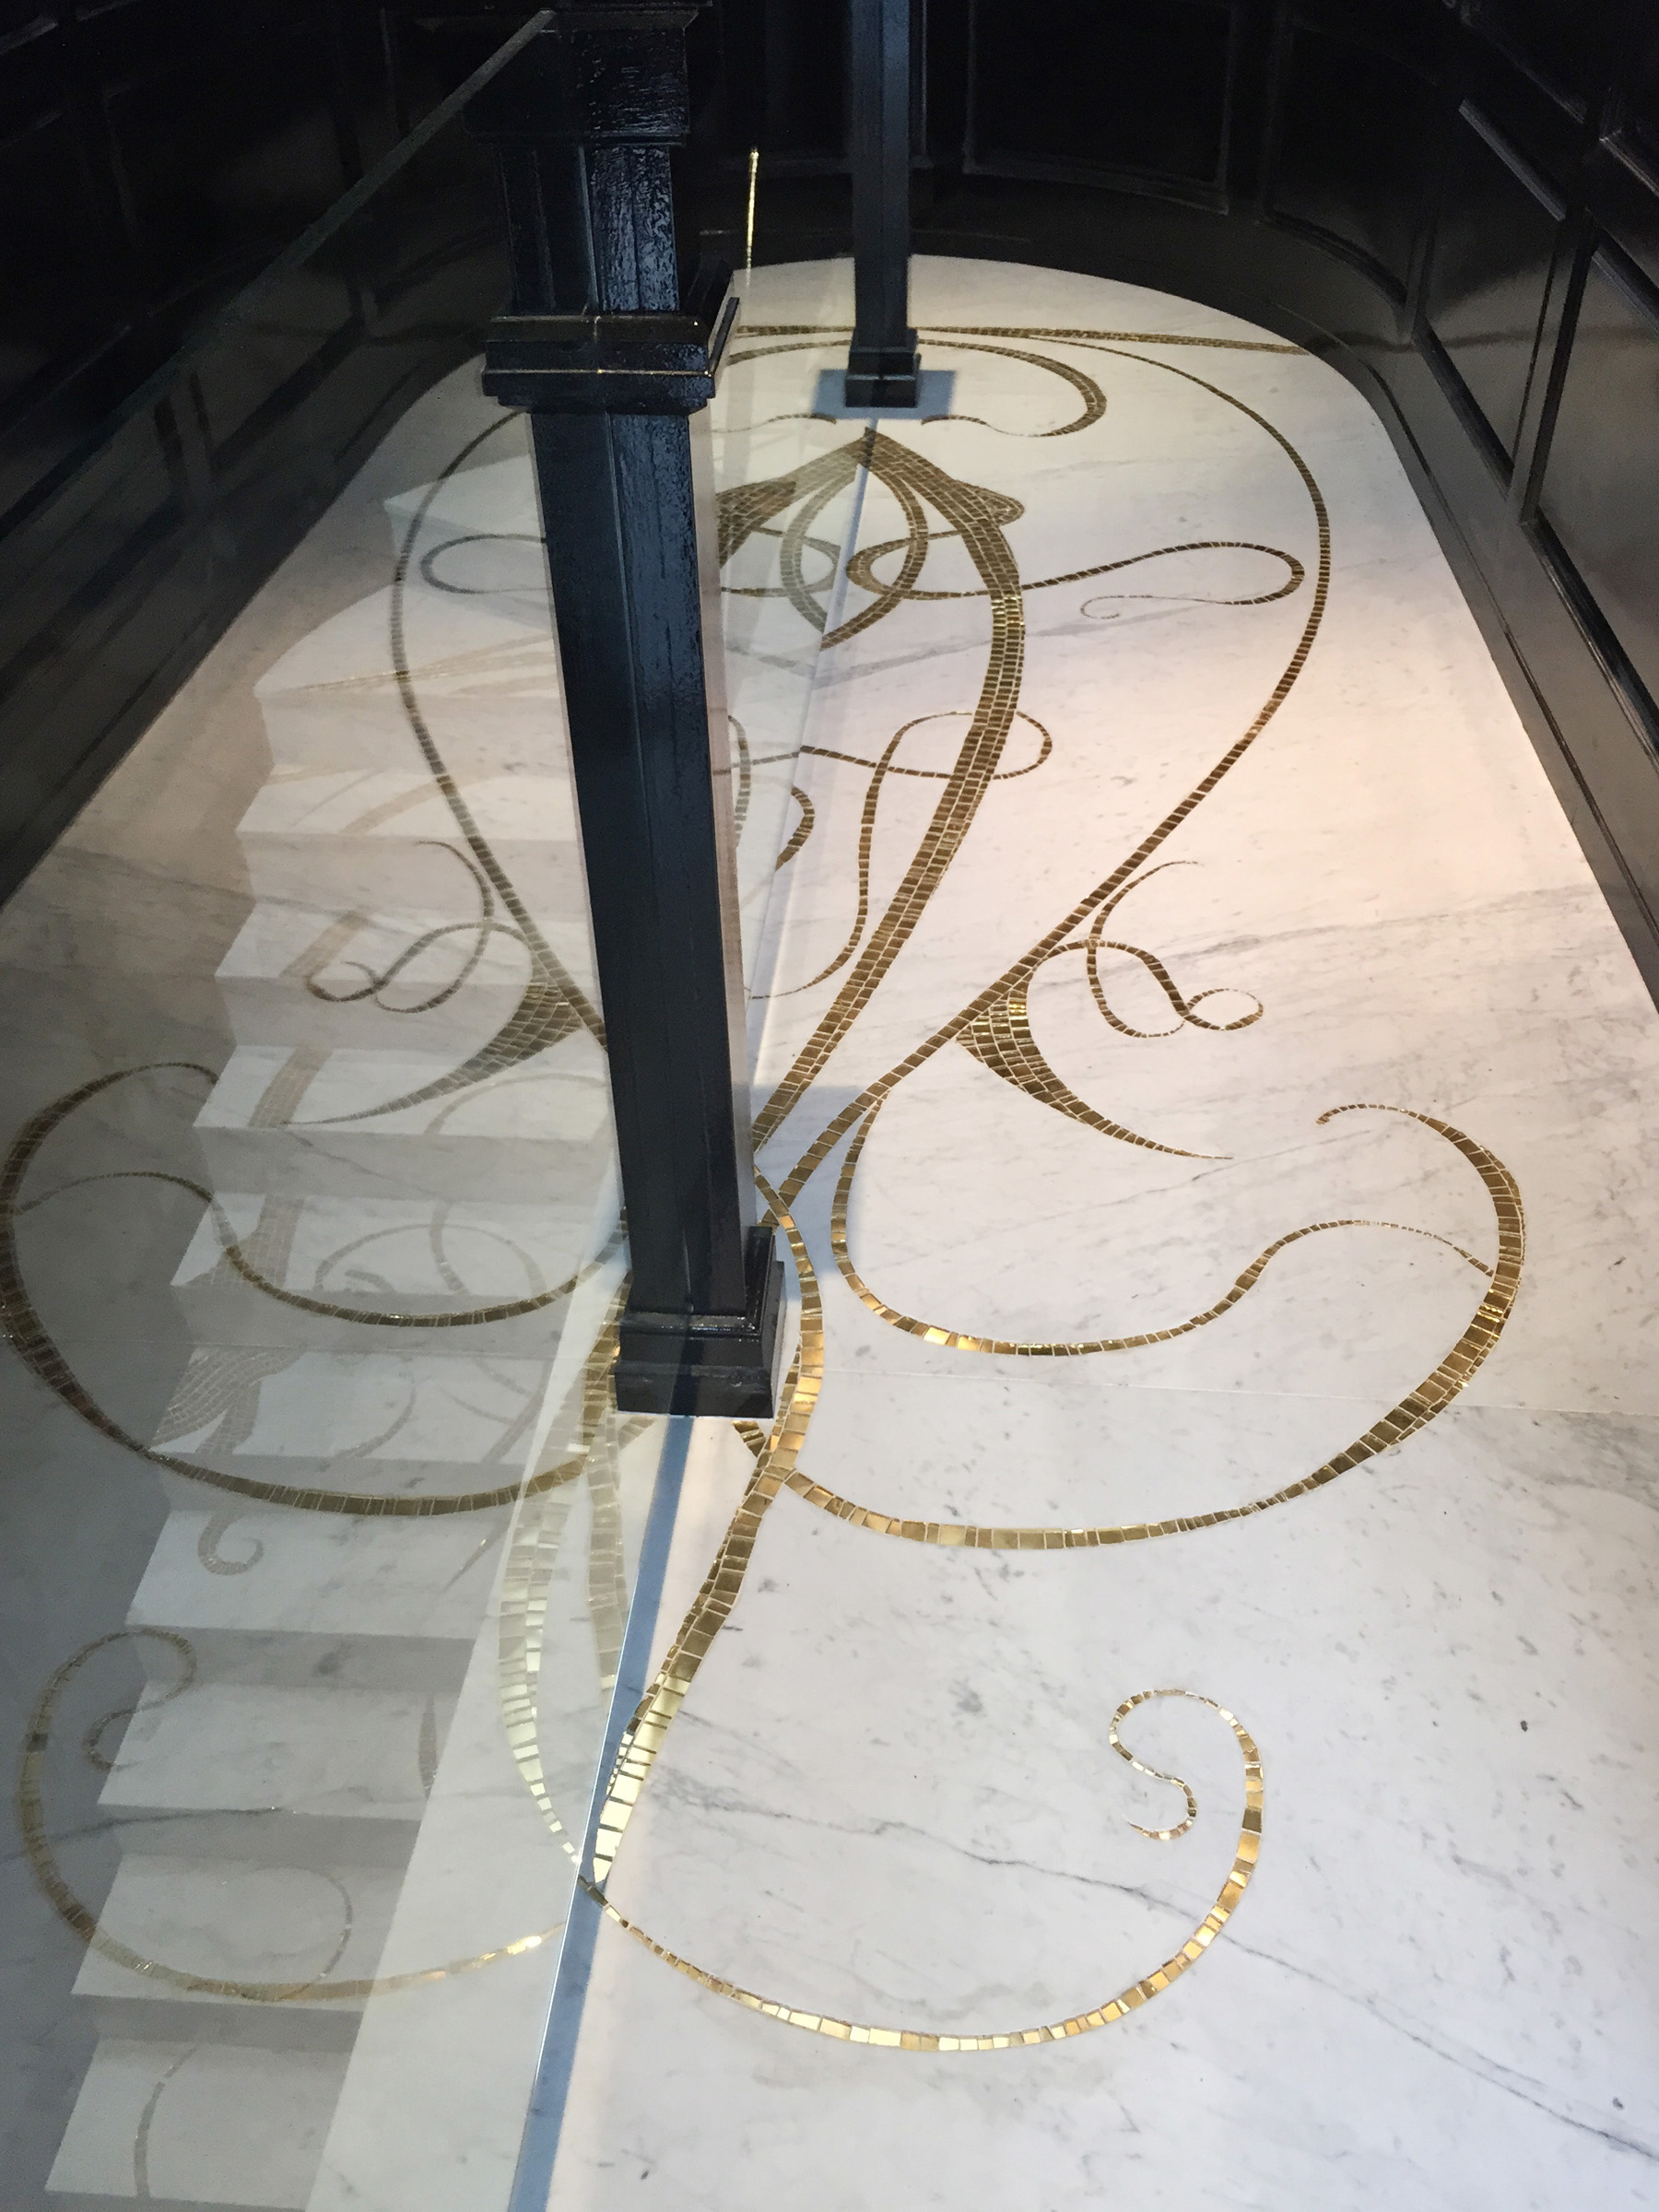 Cathleen Newsham, SOHO Penthouse Floor, 2015, Marble and gold tile floor mosaic